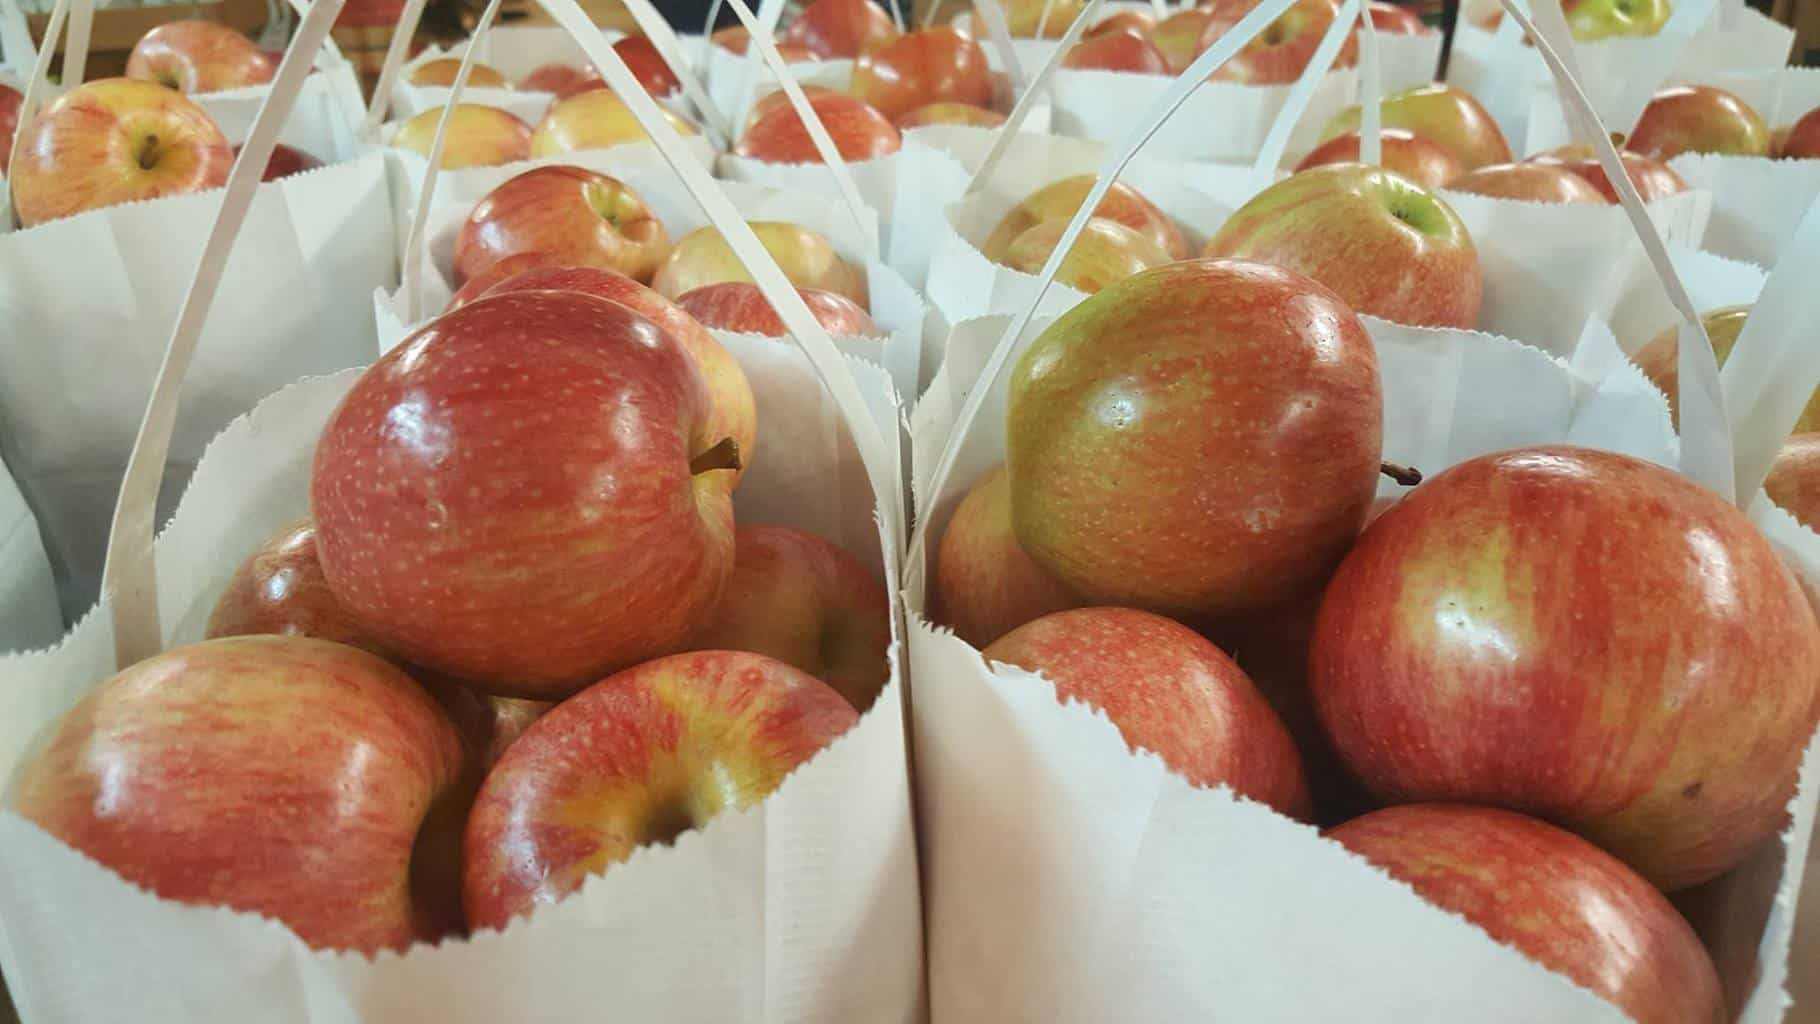 Mercier Orchards Bags of Apples